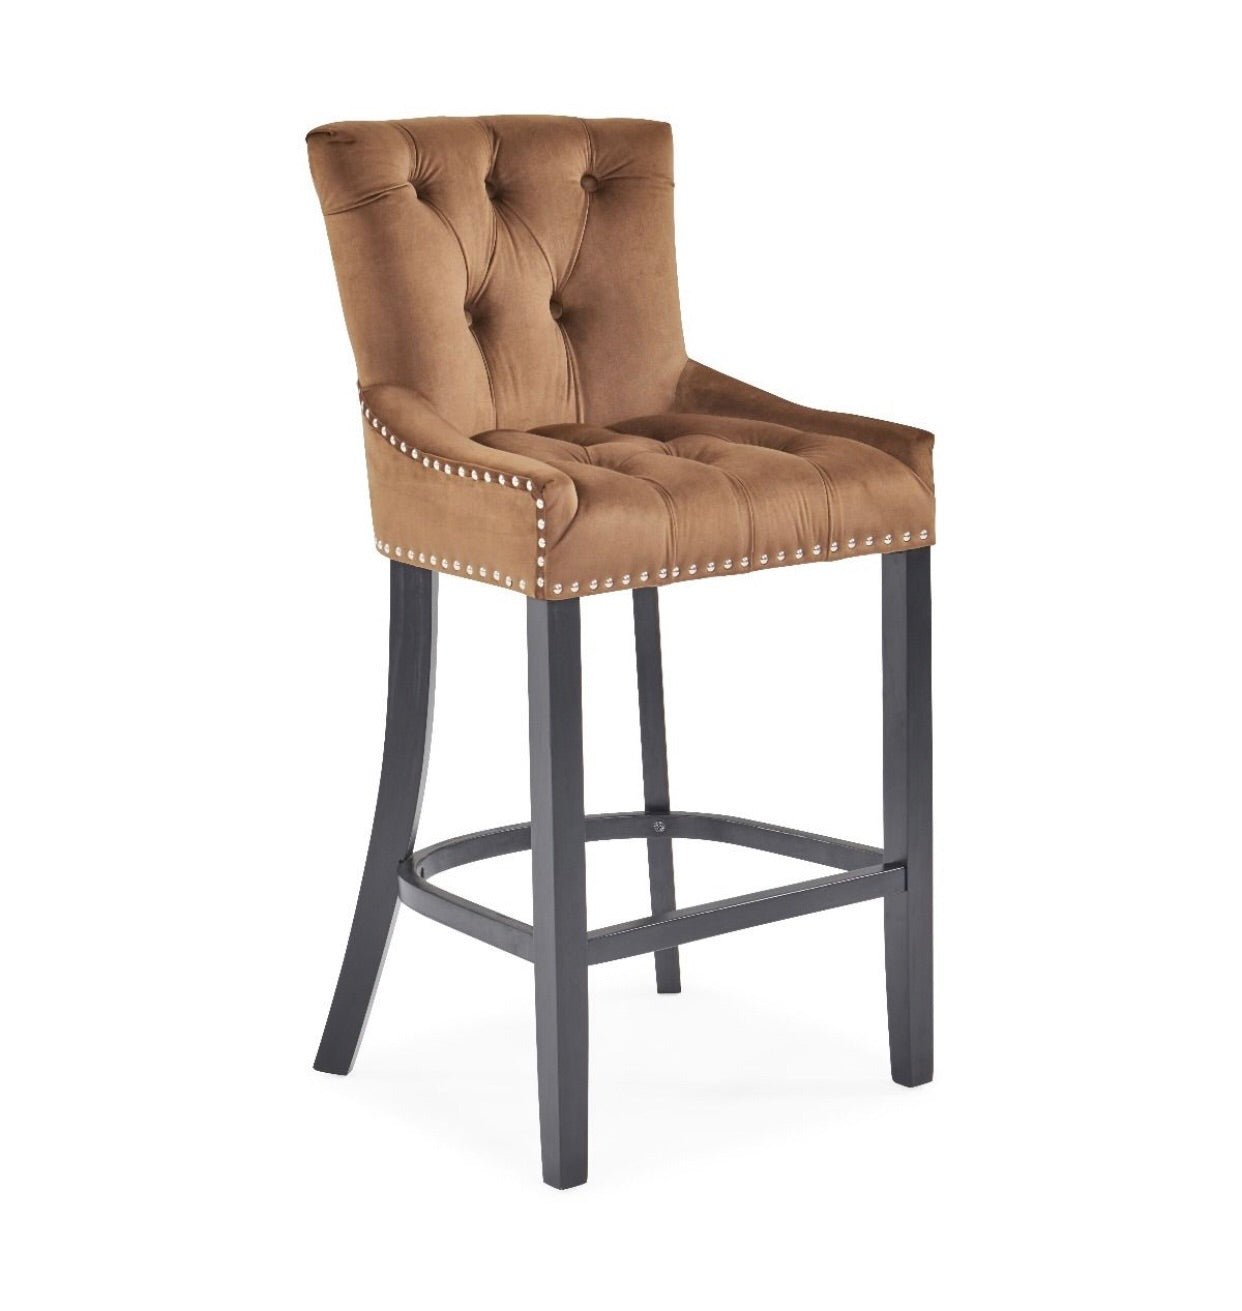 Sydney Bar Stool - Mink